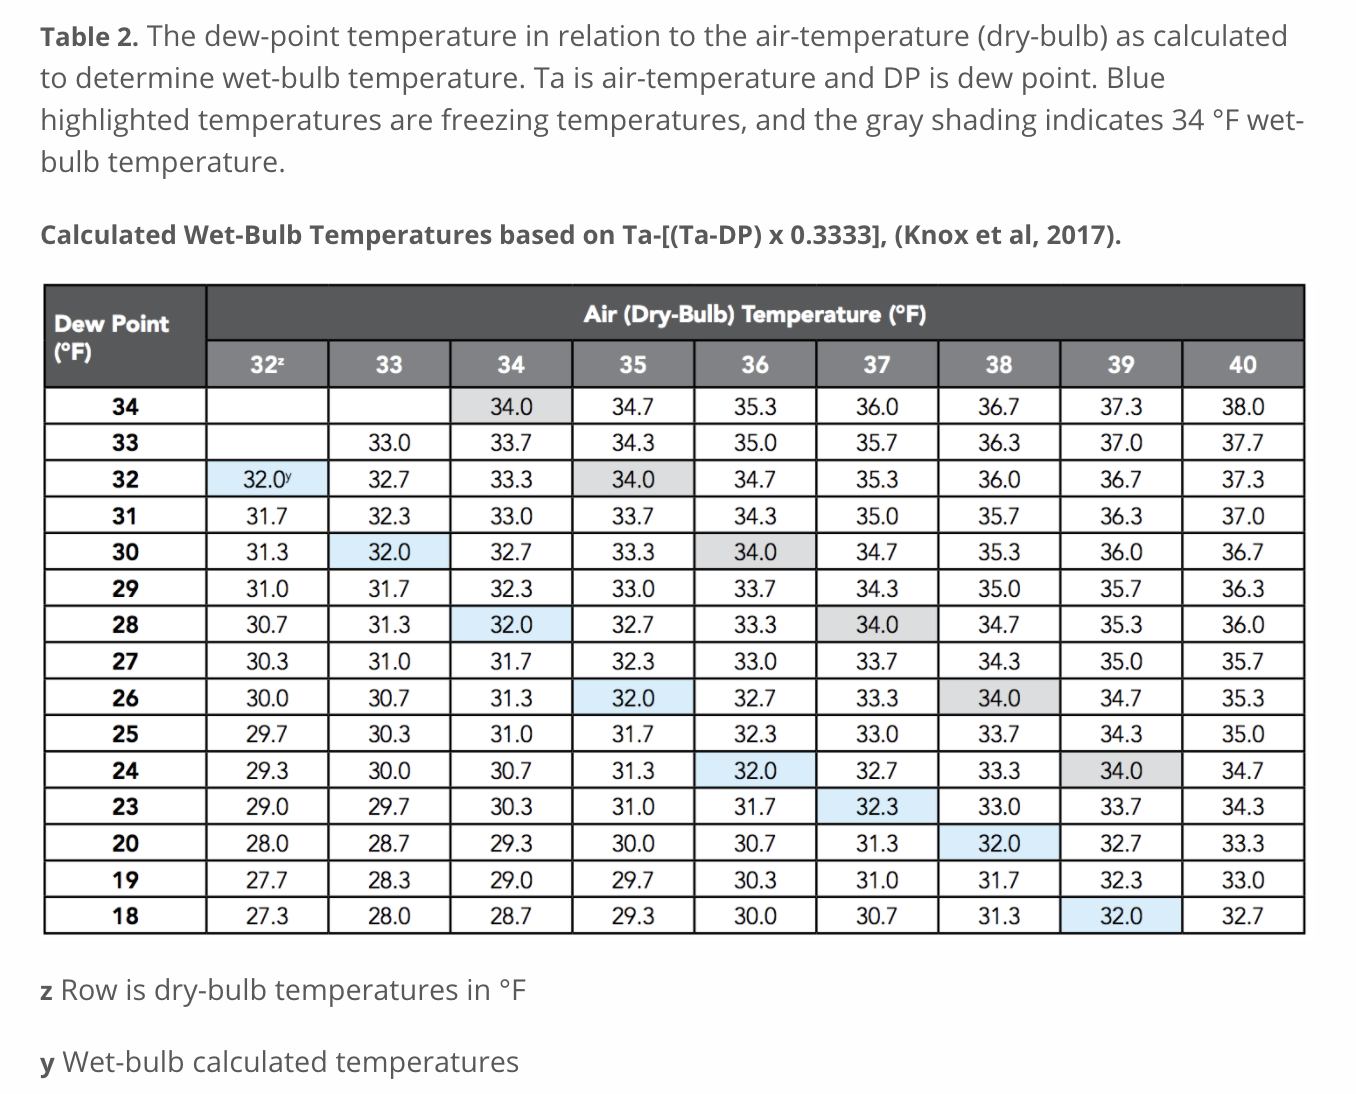 Dew-point temperatures